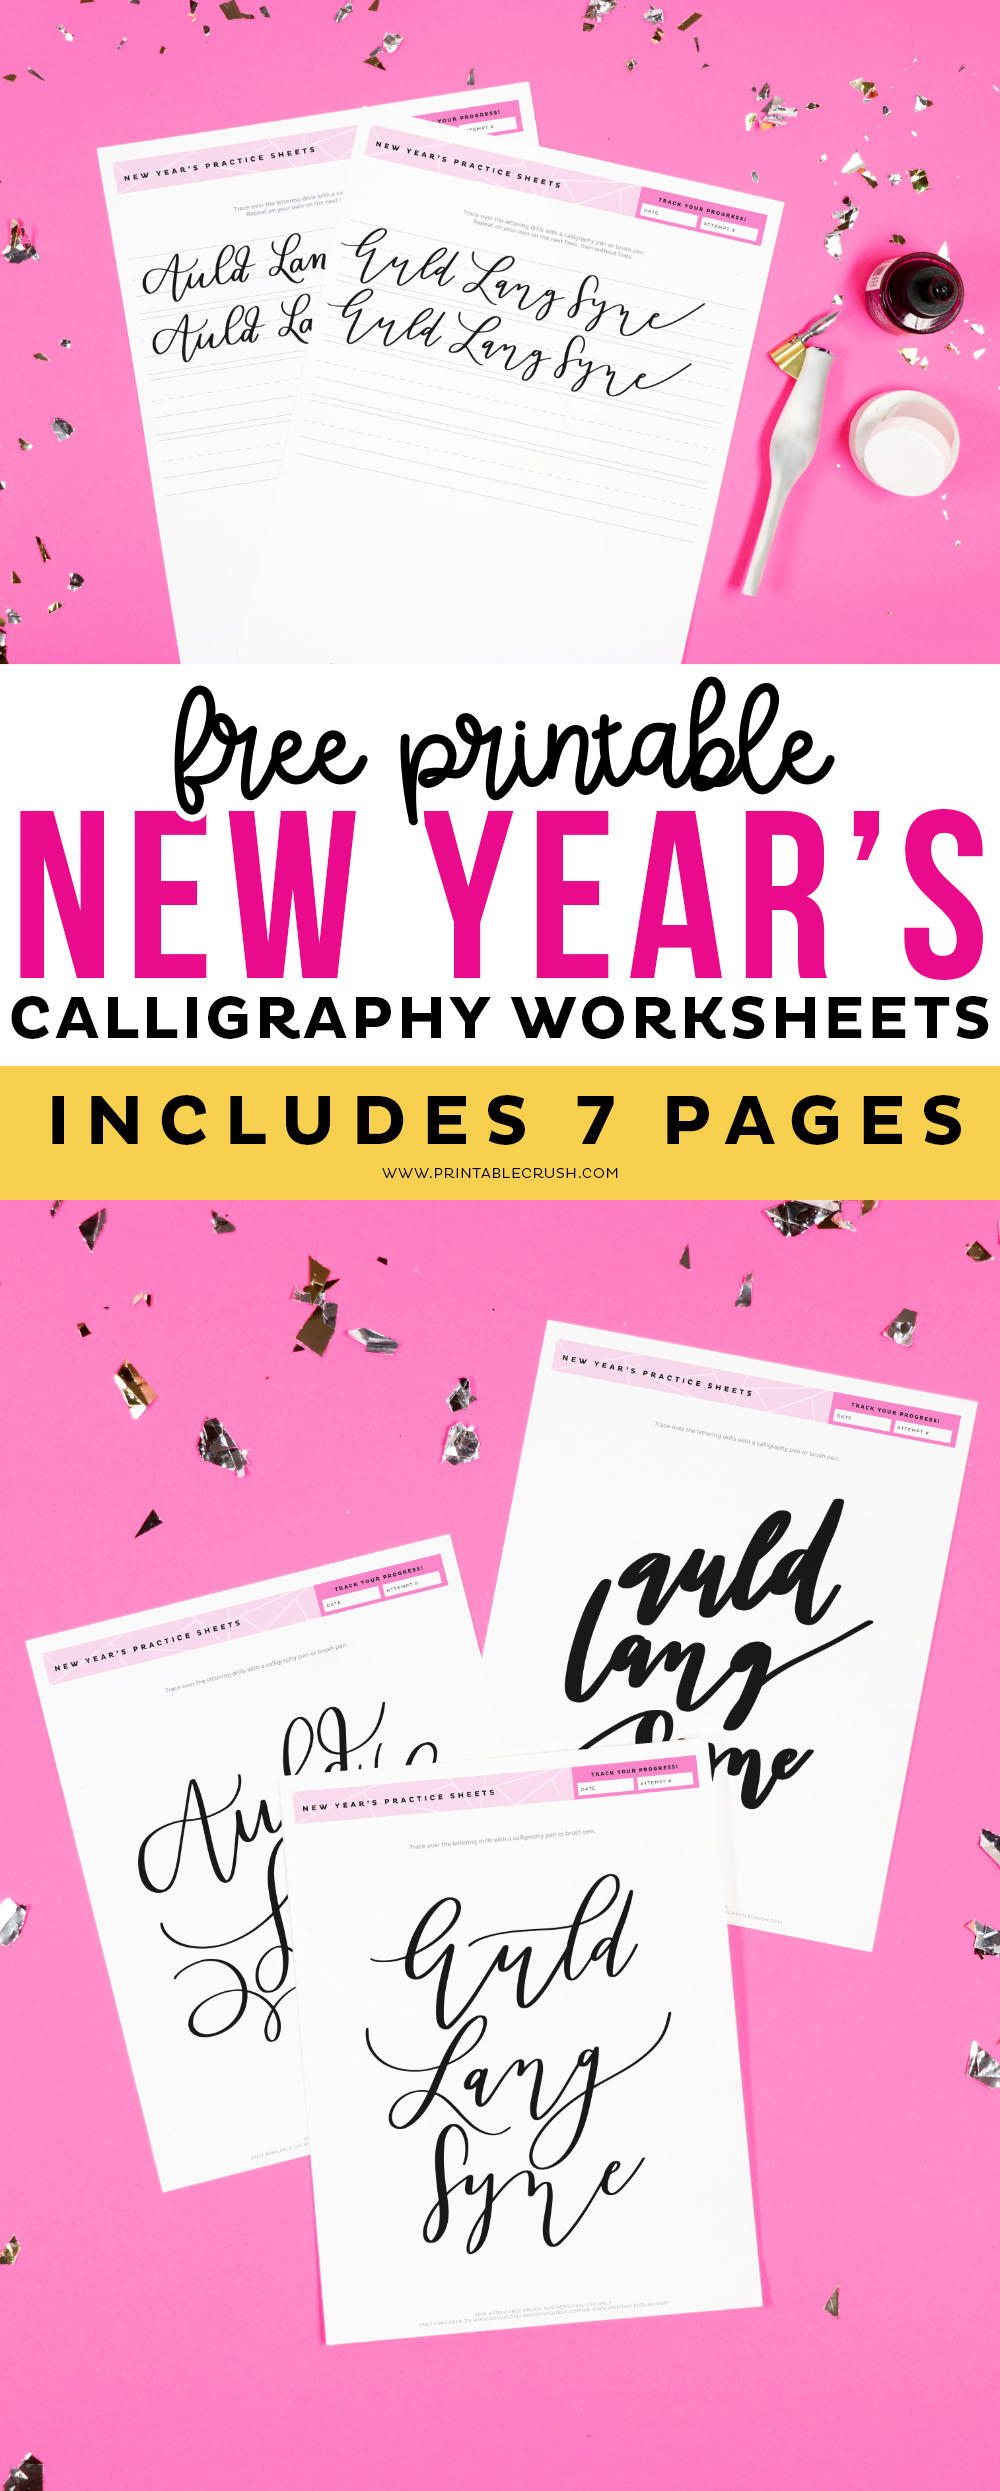 Free Auld Lang Syne Calligraphy Worksheets - New Year's Hand Lettering Practice Sheets - Calligraphy Practice - Printable Crush